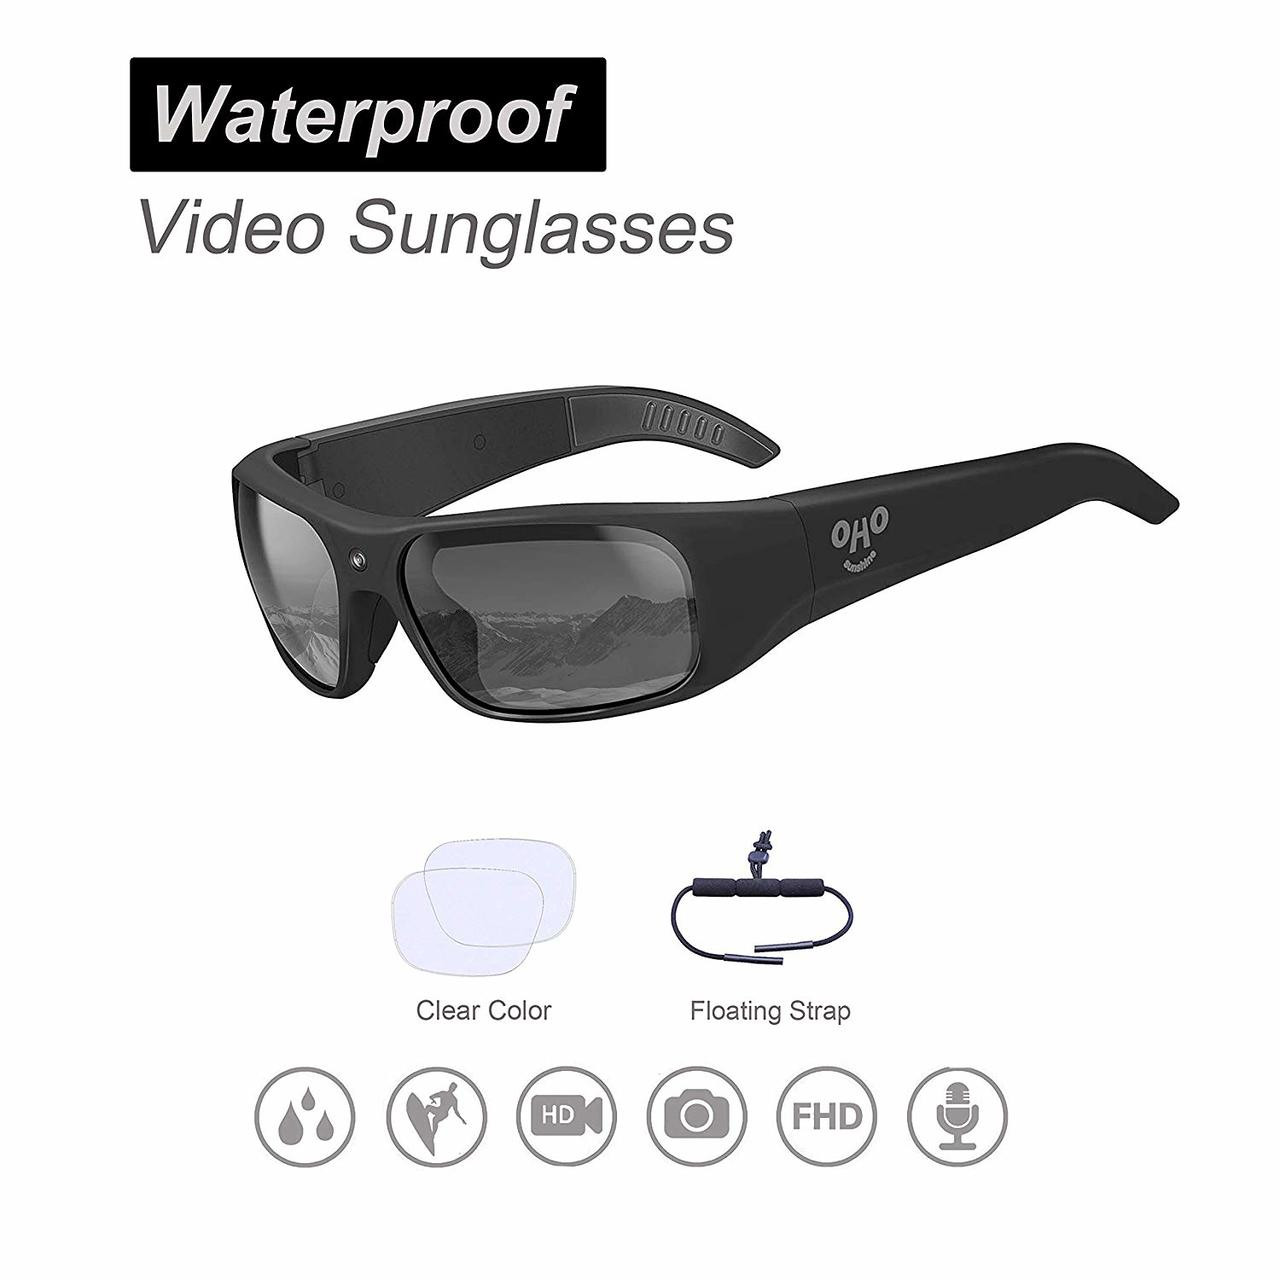 c5d627e67b3b 1080P HD Waterproof Video Sunglasses, 1080P Full HD Video Recording Camera  with Polarized UV400 Protection ...